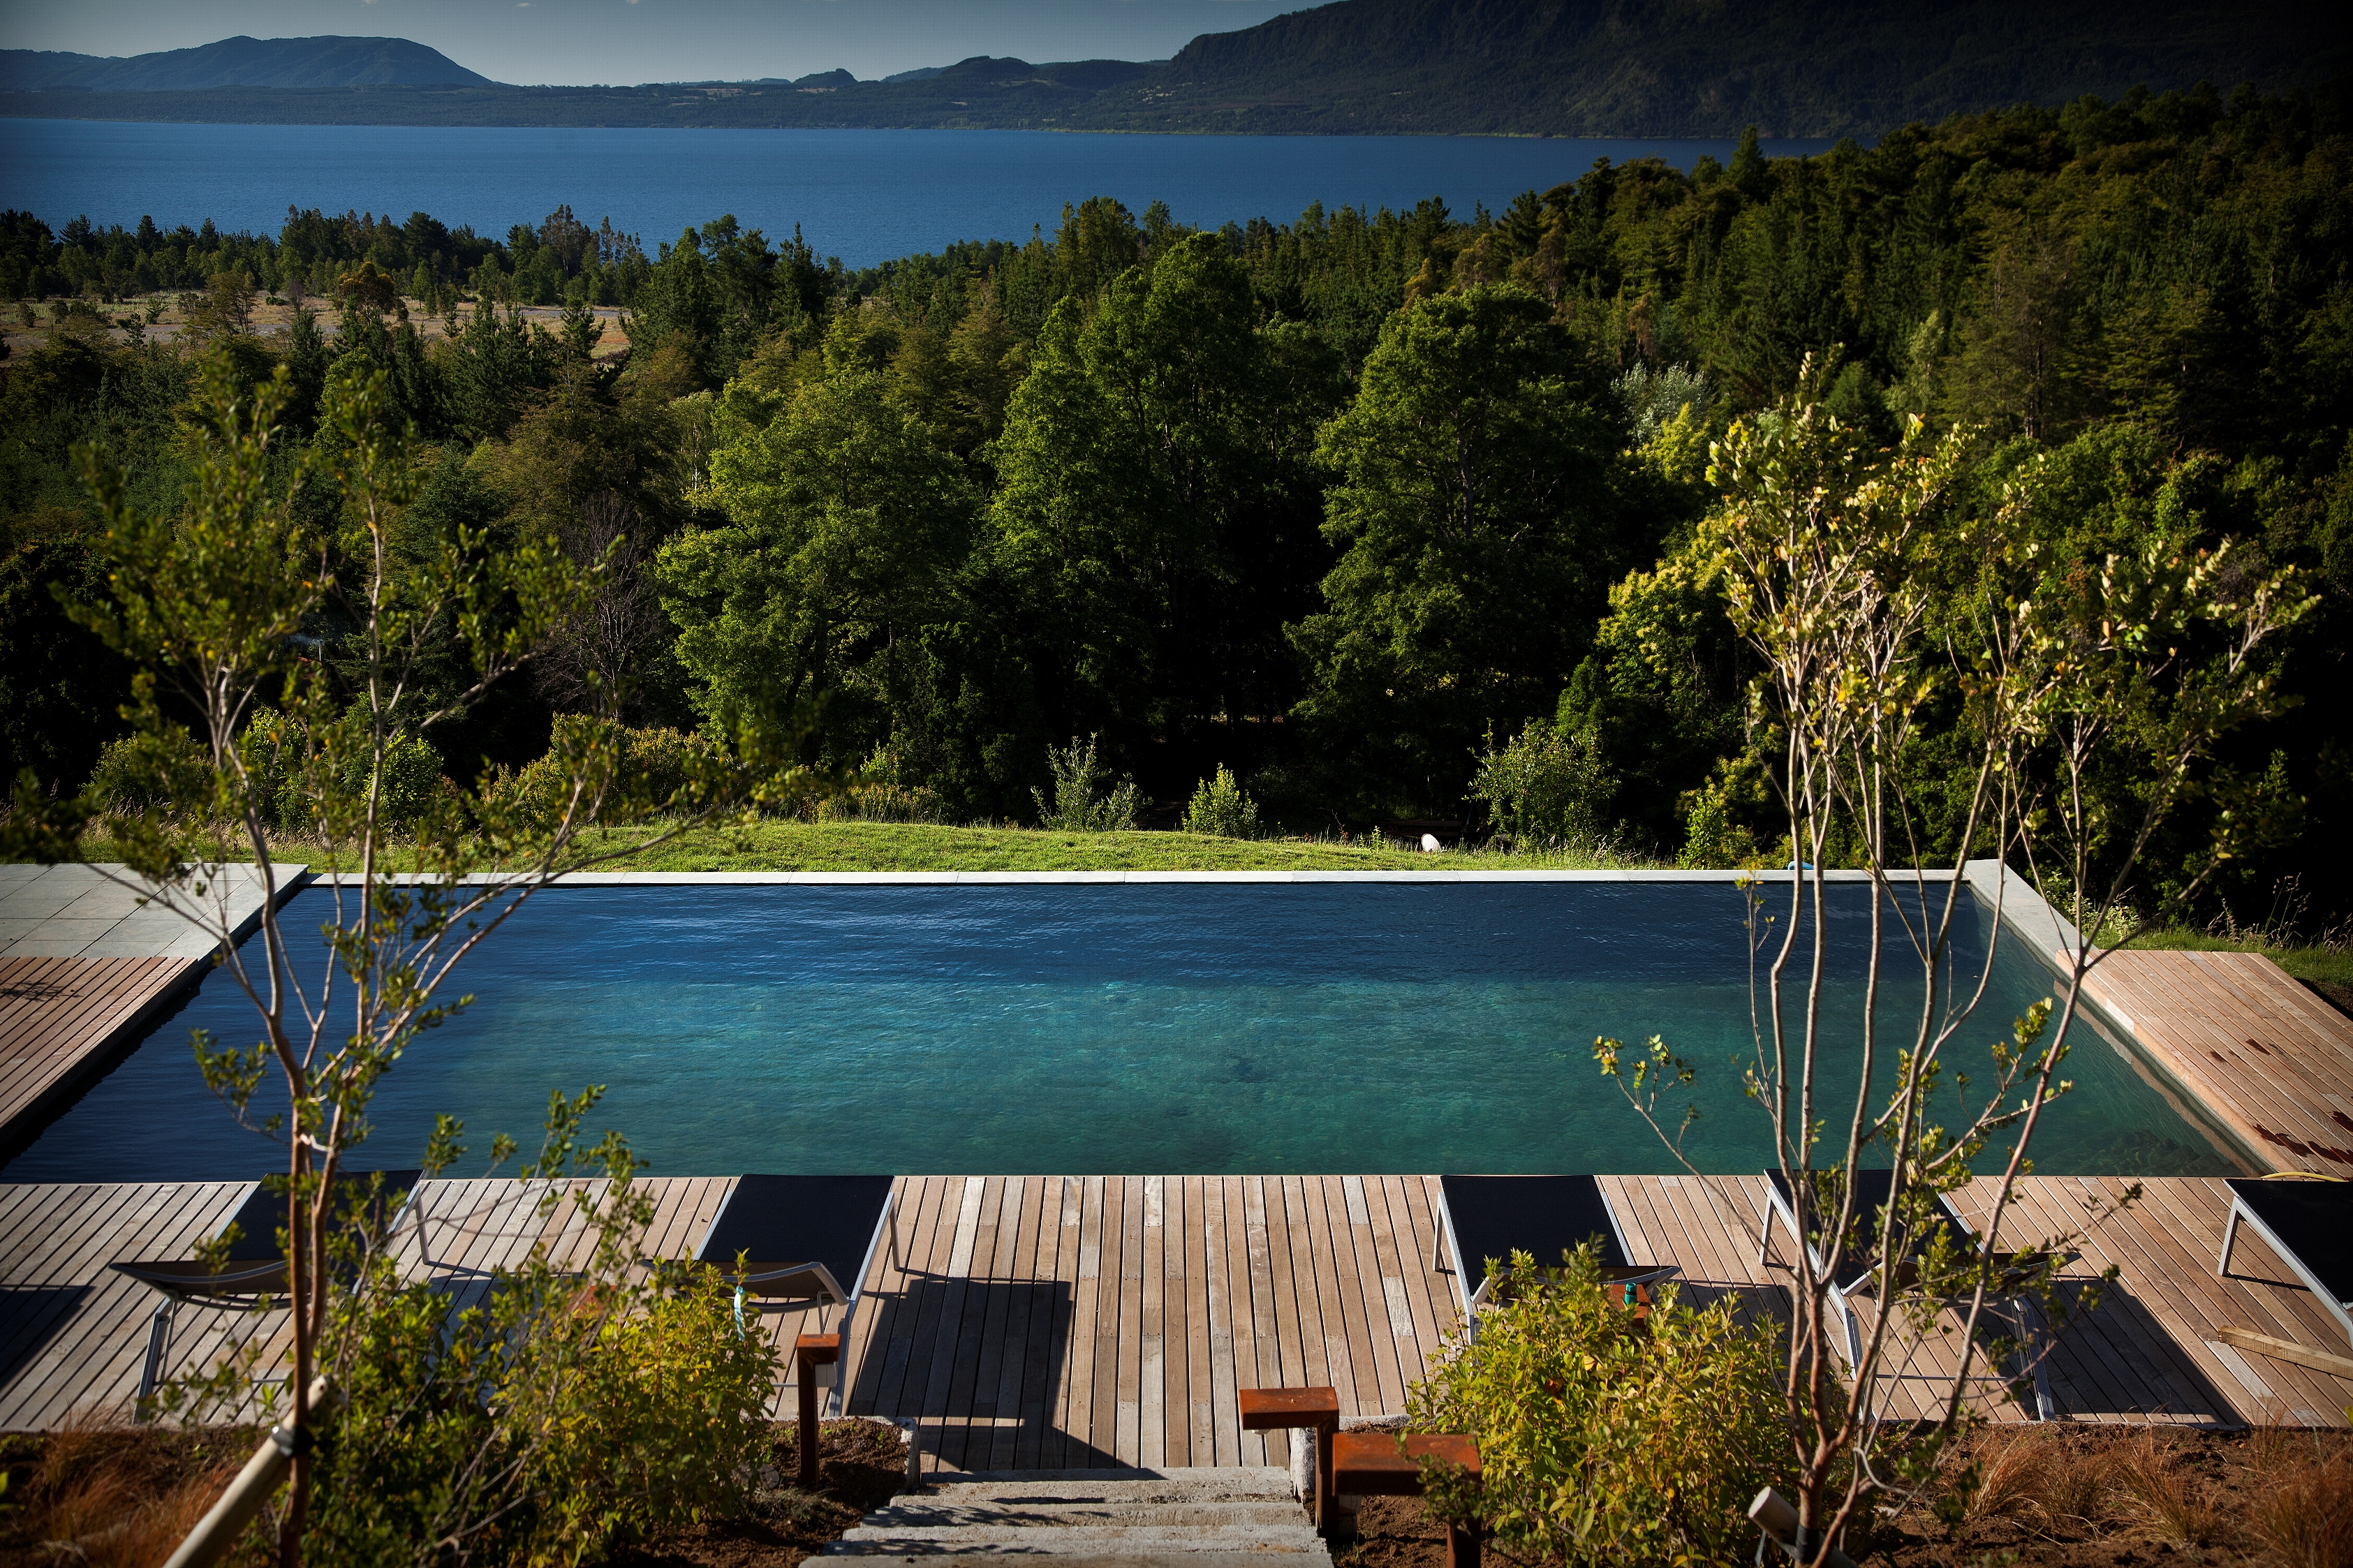 Lake Lodge Hotel Pucon_Pool and View